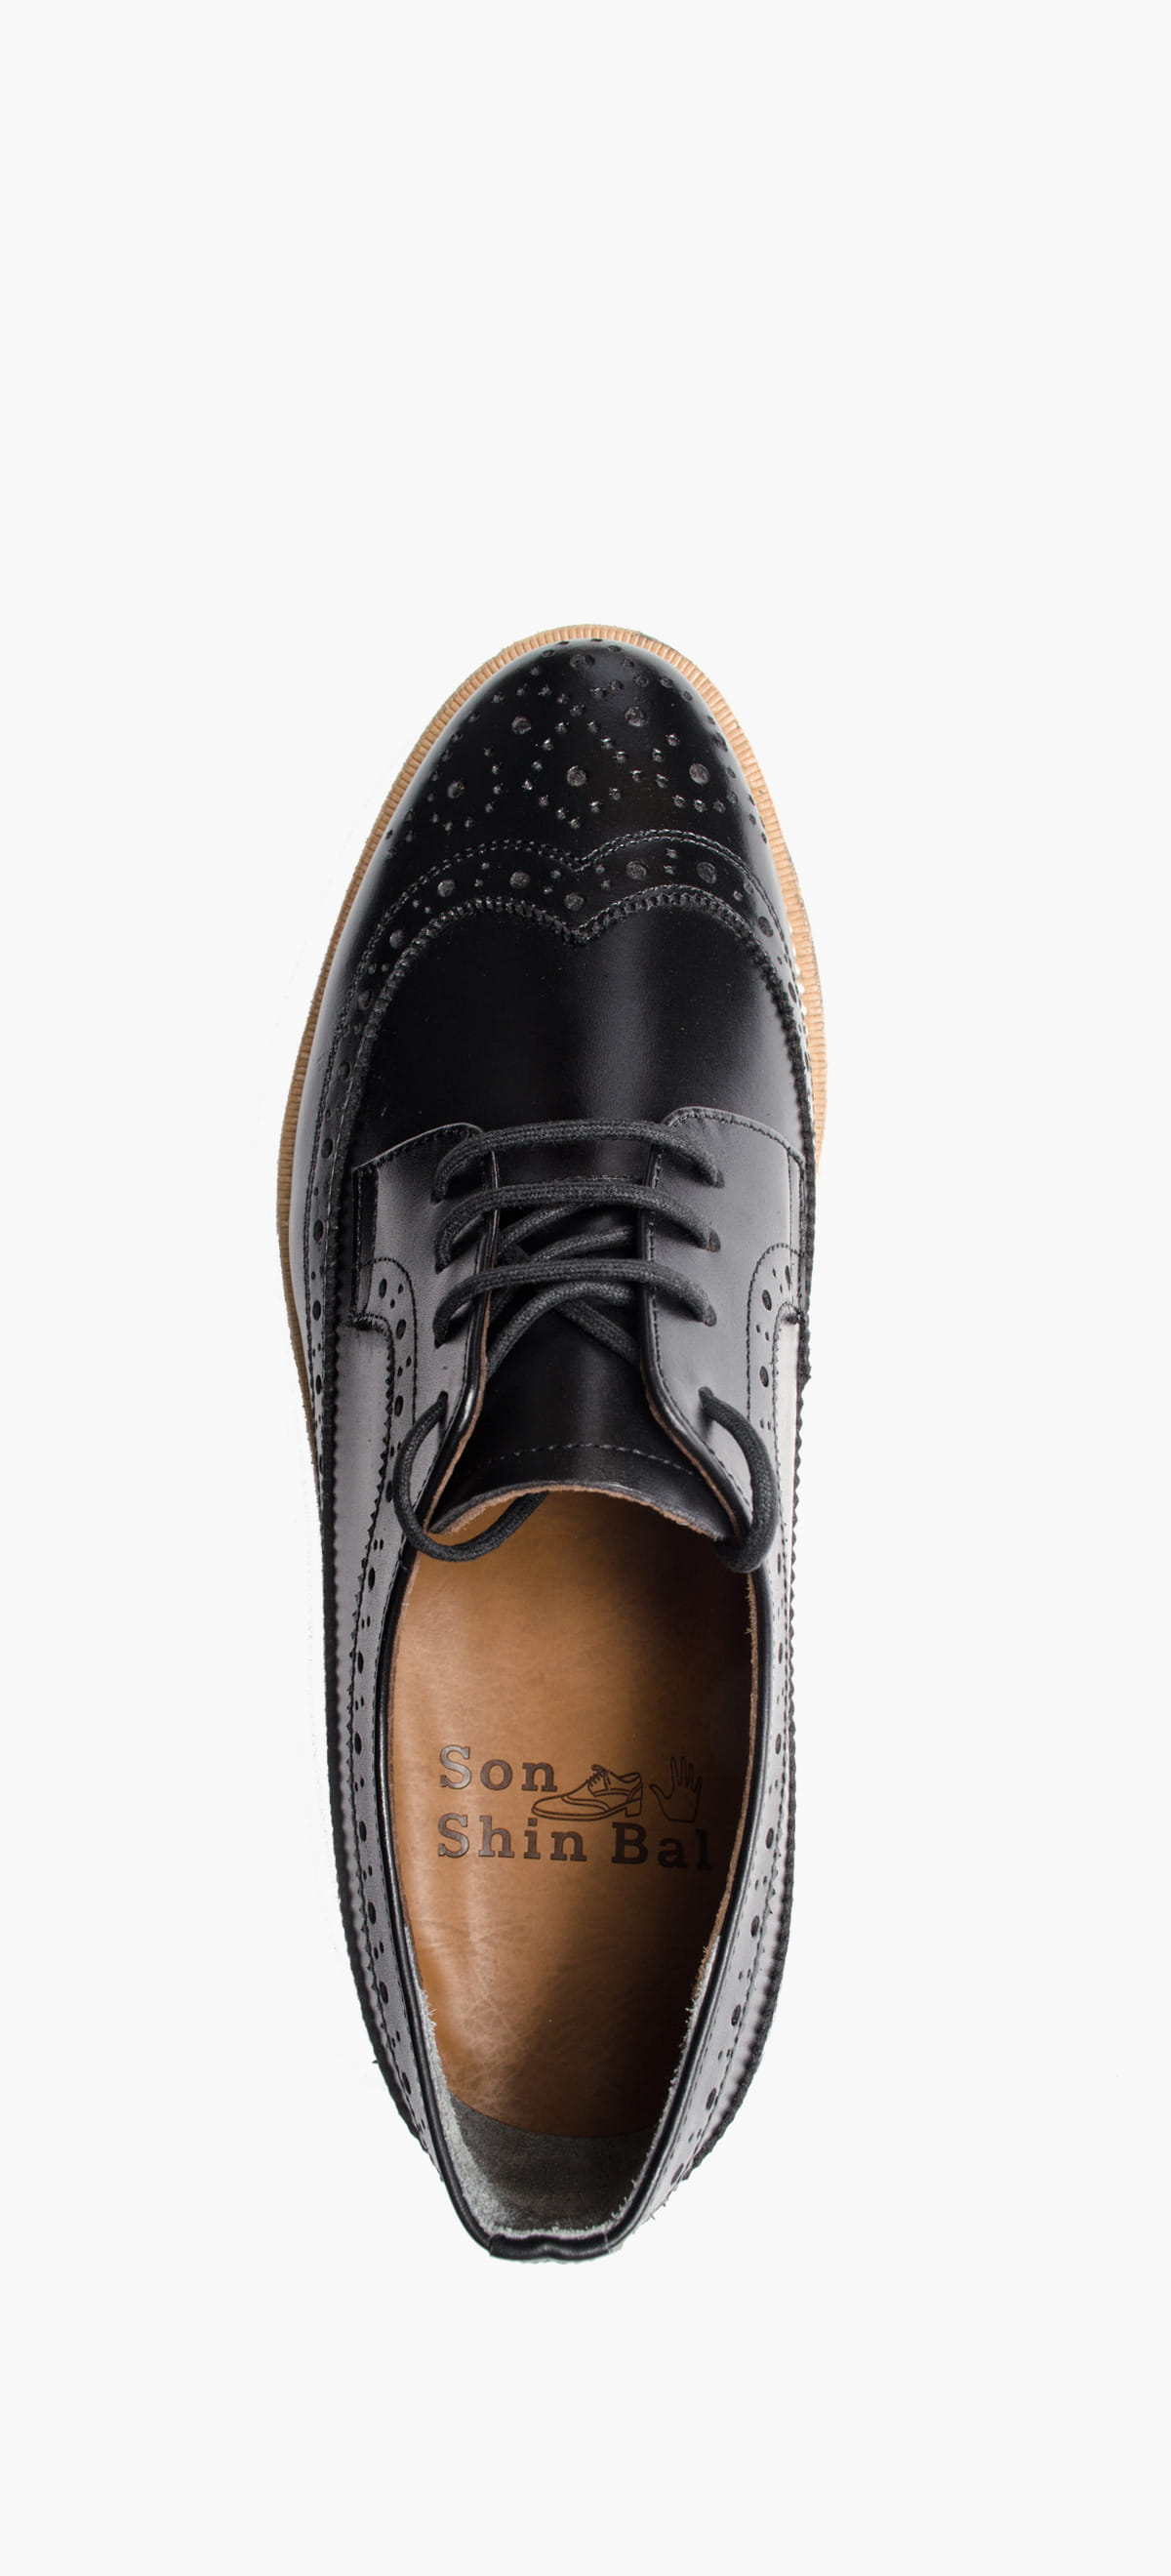 Wing Tip 0027-33 Black Kip